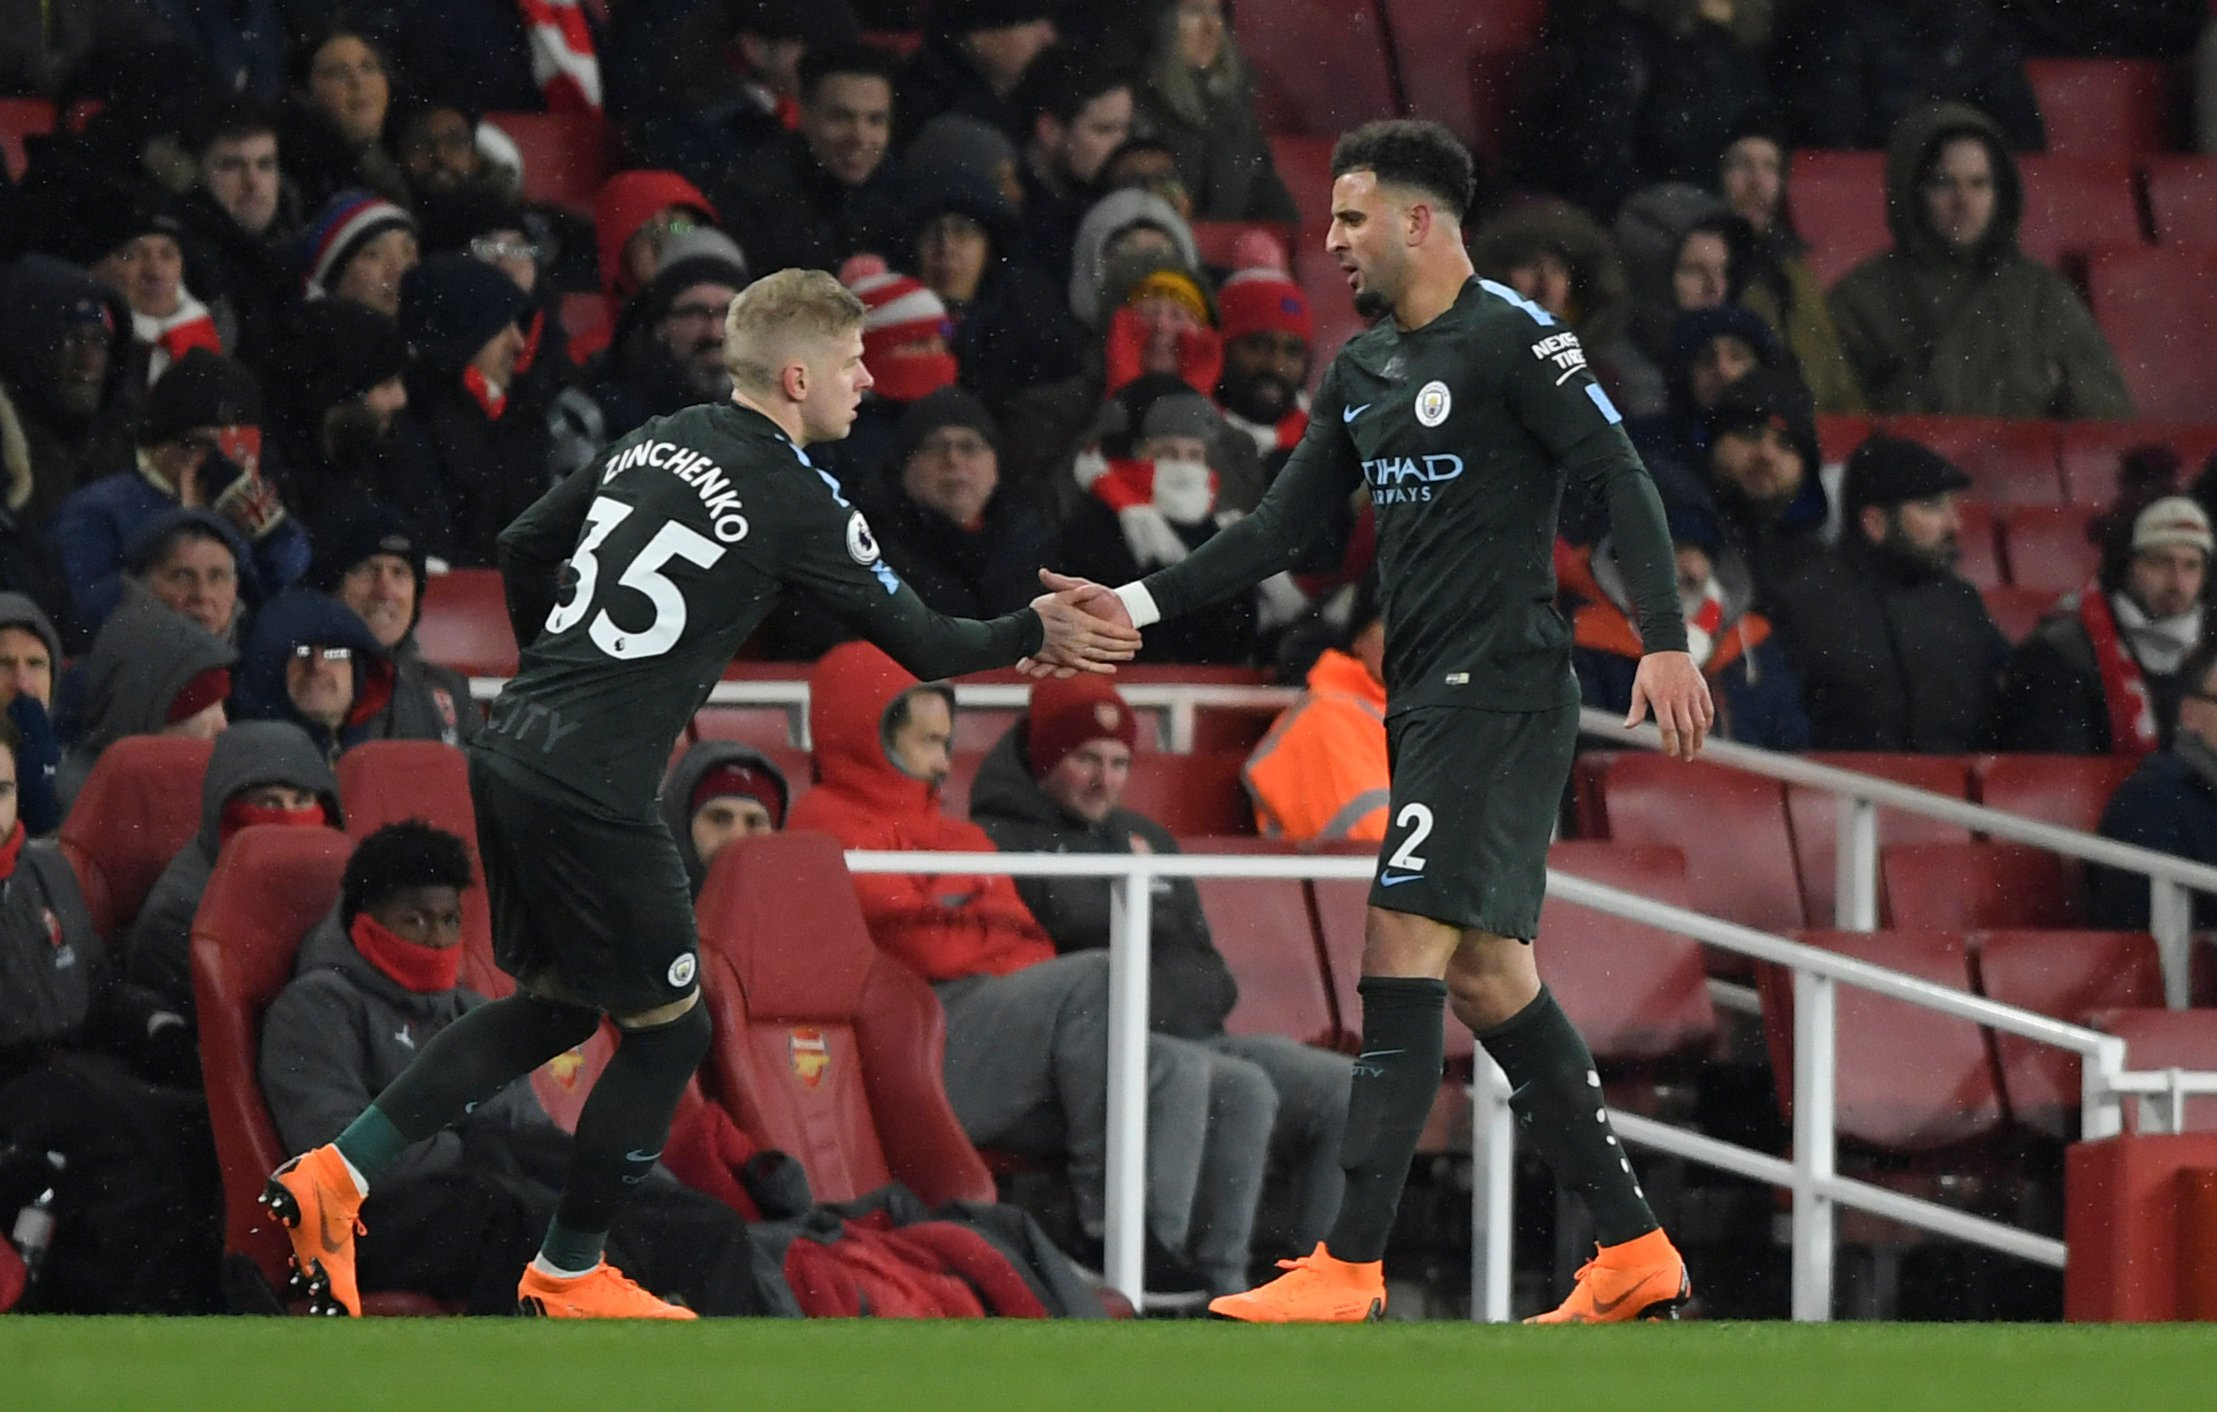 """Soccer Football - Premier League - Arsenal vs Manchester City - Emirates Stadium, London, Britain - March 1, 2018 Manchester City's Oleksandr Zinchenko comes on as a substitute to replace Kyle Walker Action Images via Reuters/Tony O'Brien EDITORIAL USE ONLY. No use with unauthorized audio, video, data, fixture lists, club/league logos or """"live"""" services. Online in-match use limited to 75 images, no video emulation. No use in betting, games or single club/league/player publications. Please contact your account representative for further details."""